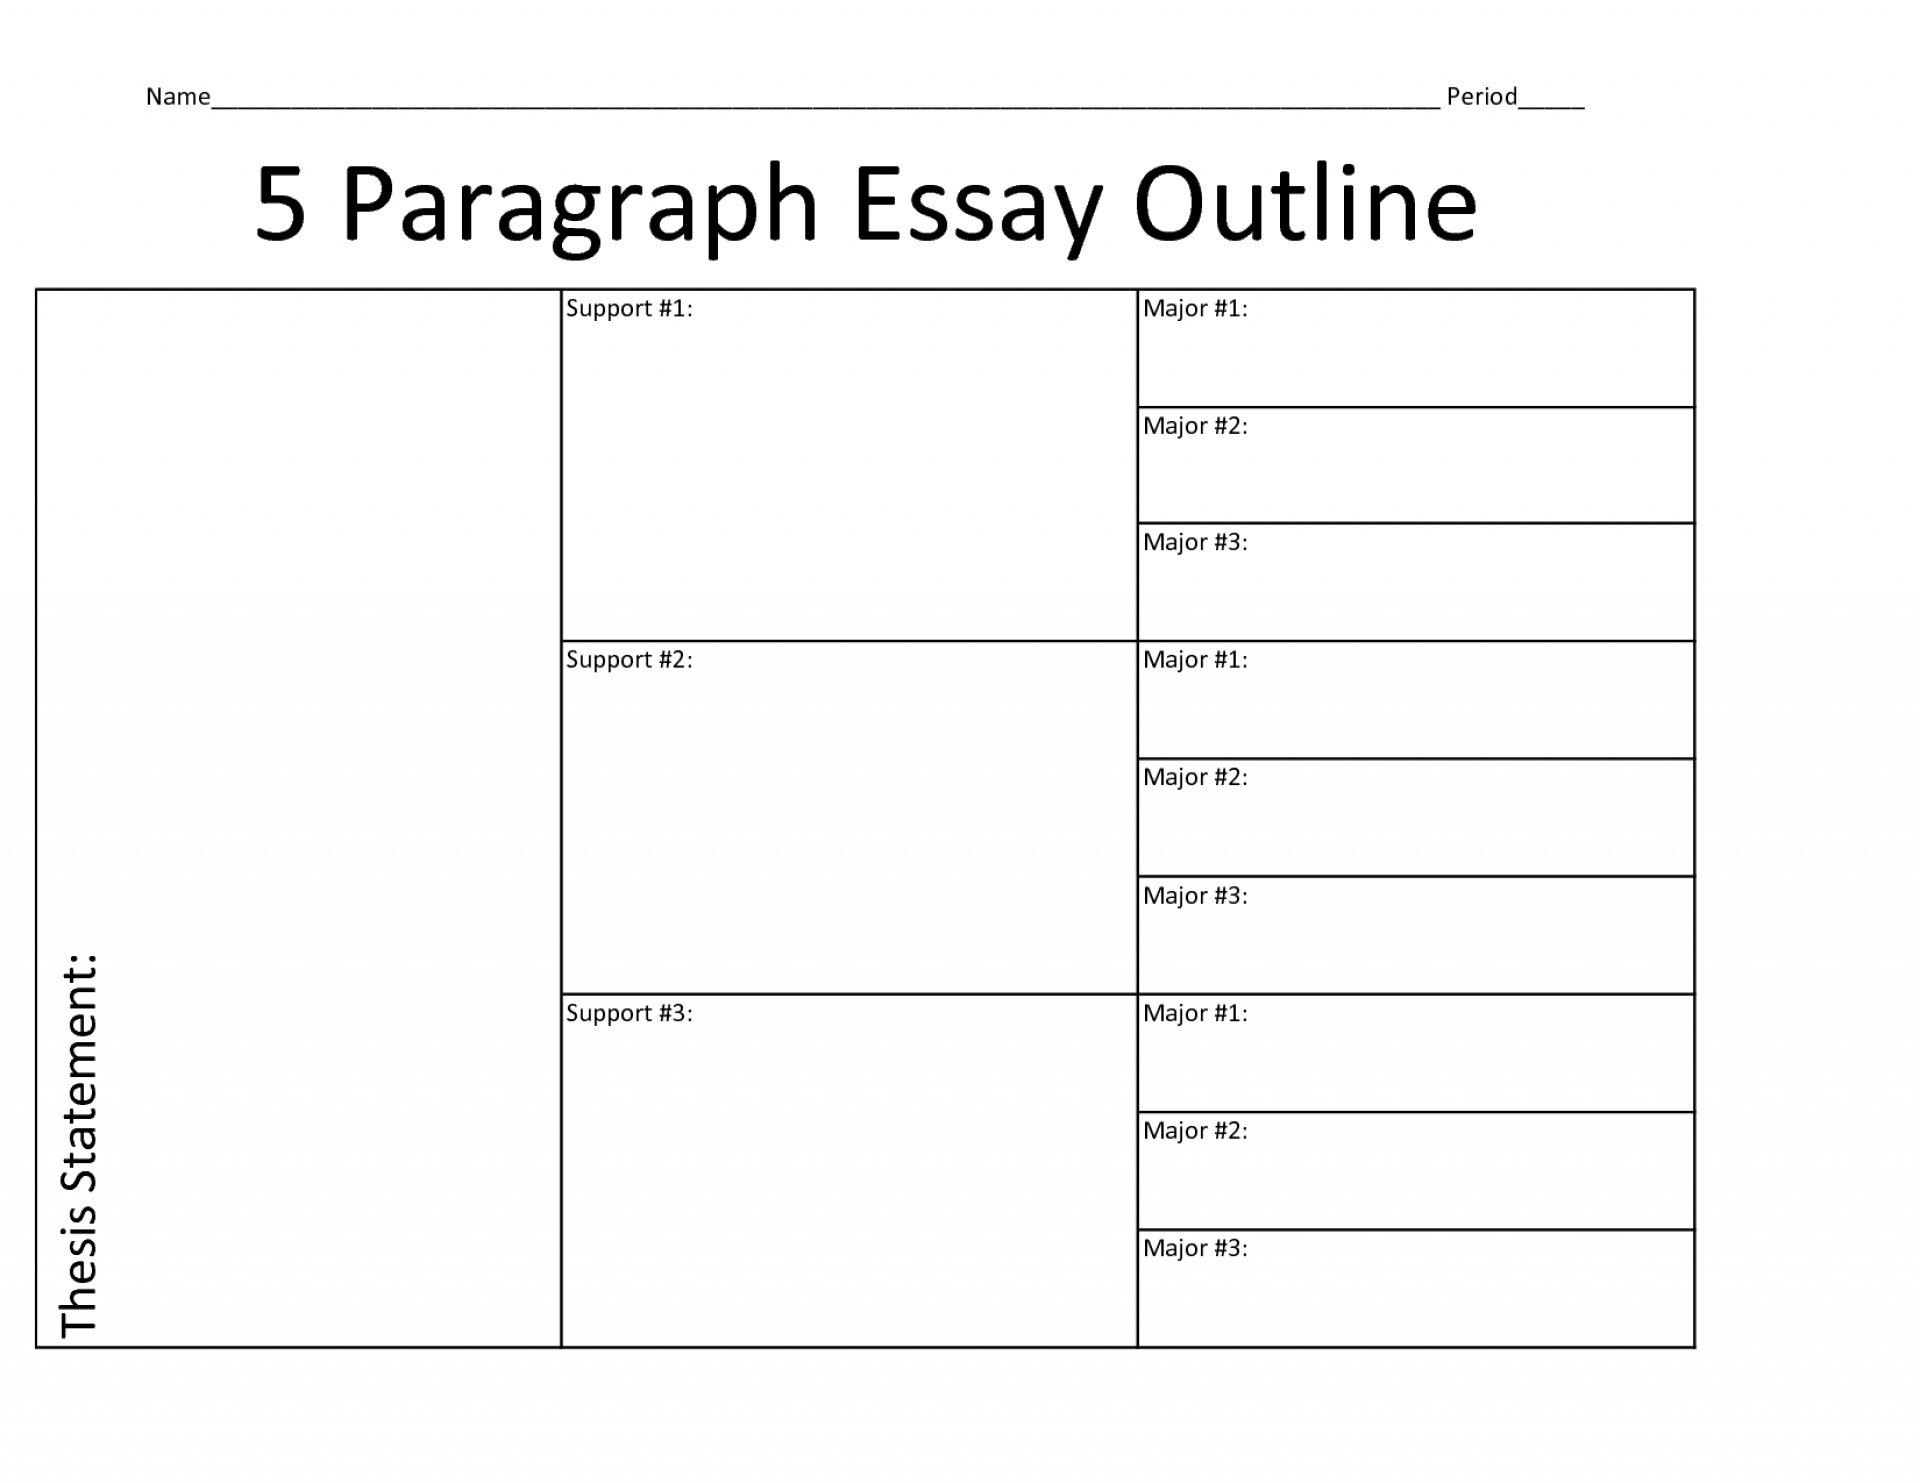 012 Paragraph Essay Graphic Organizer Example Organizers Executive Functioning Mr Brown039s Outline L Sensational 5 Five High School Argumentative Pdf Organizer-hamburger 1920